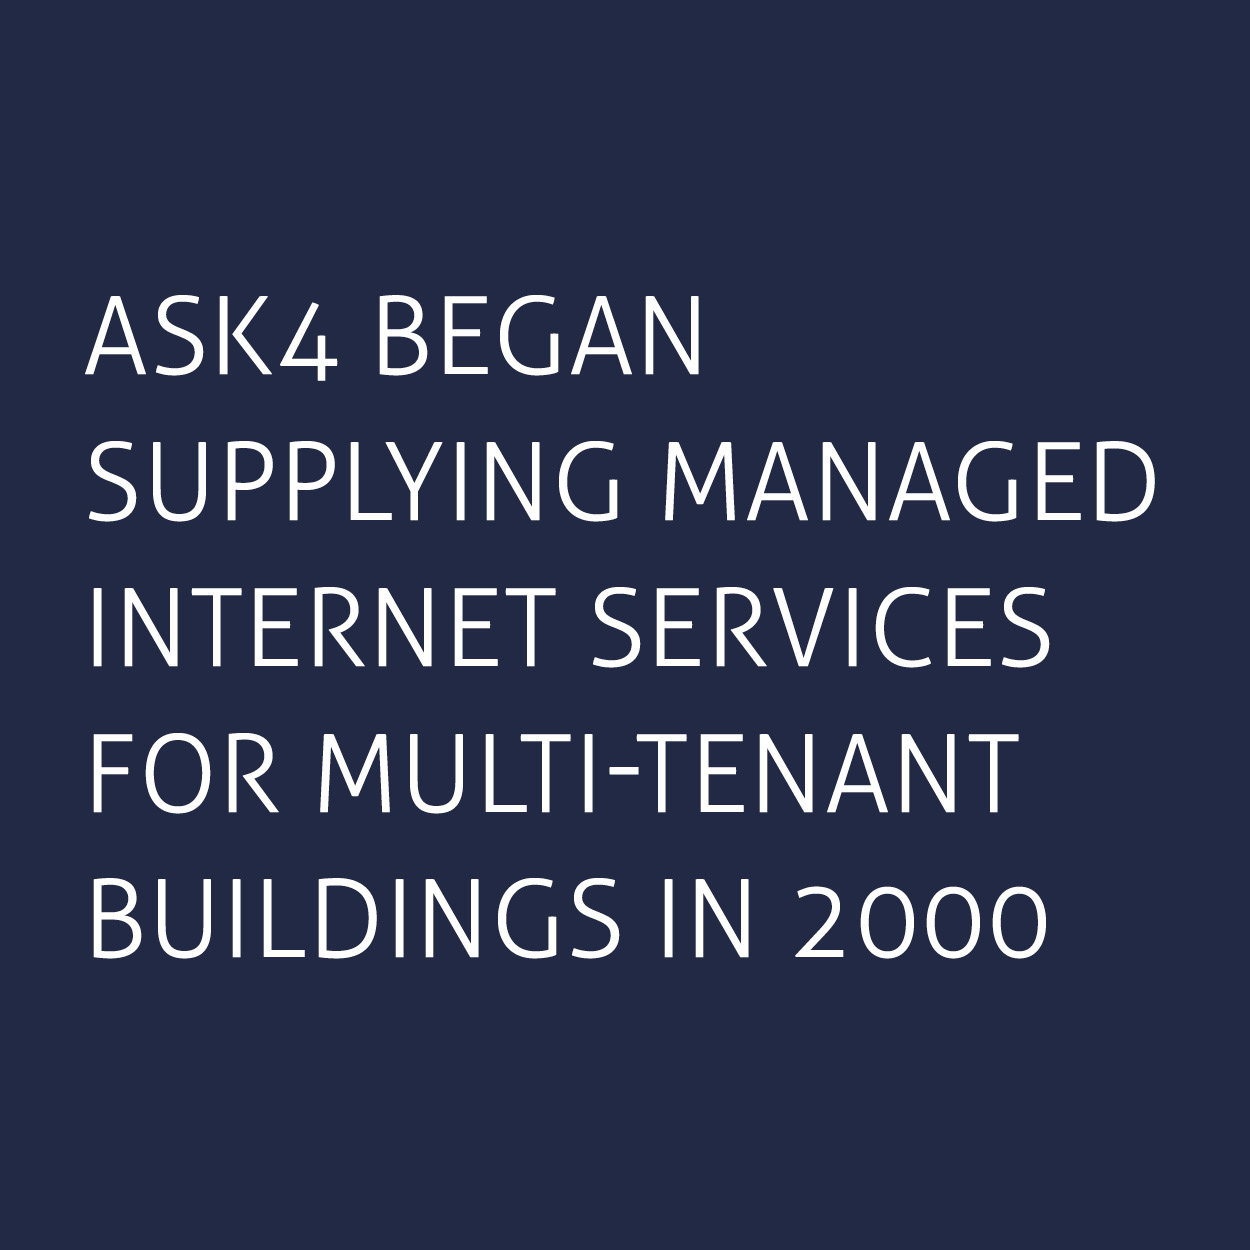 ASK4 began supplying managed internet services for multi-tenant buildings in 2000.